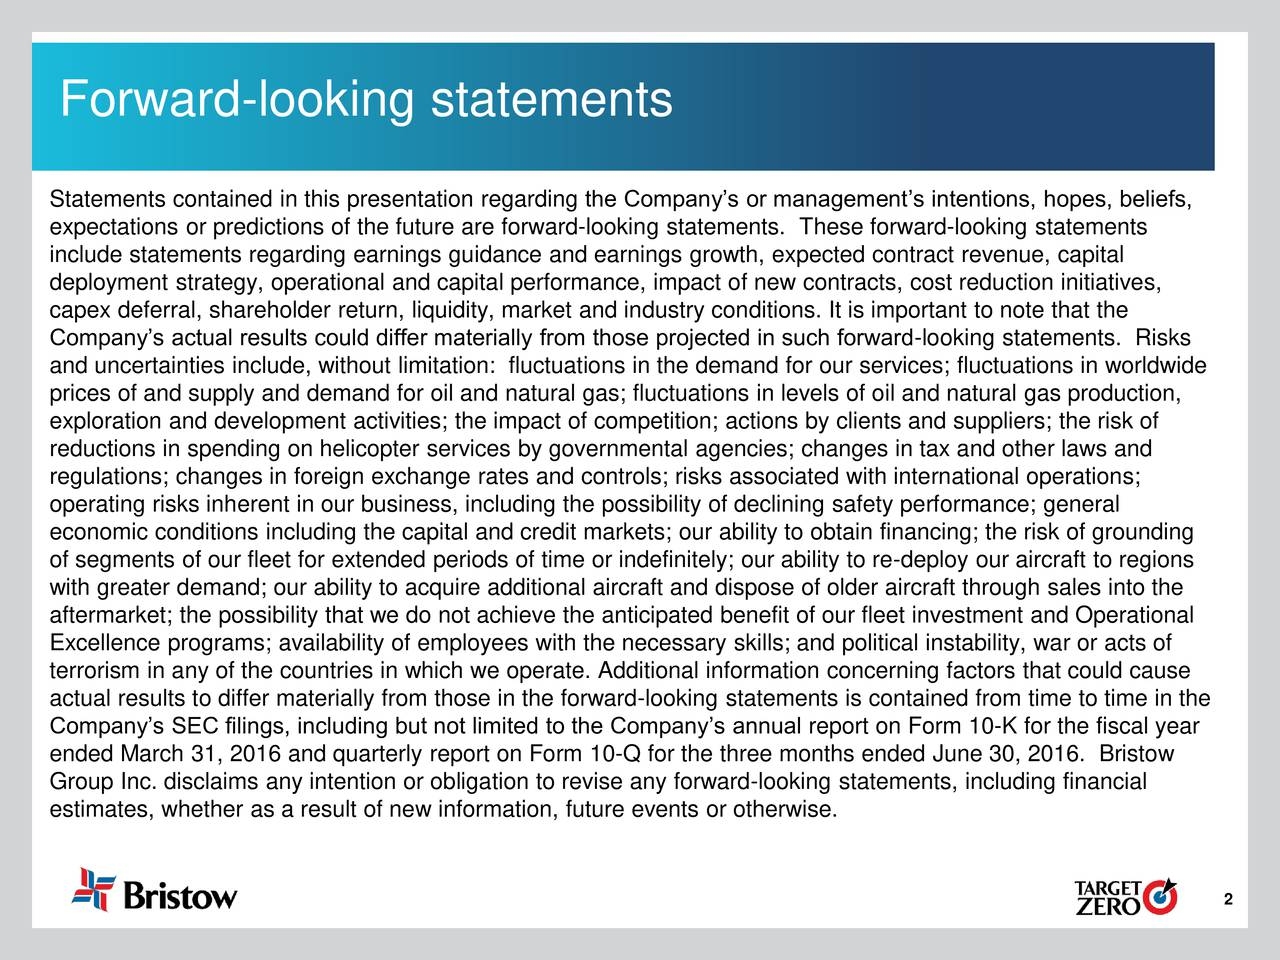 Statements contained in this presentation regarding the Companys or managements intentions, hopes, beliefs, expectations or predictions of the future are forward-looking statements. These forward-looking statements include statements regarding earnings guidance and earnings growth, expected contract revenue, capital deployment strategy, operational and capital performance, impact of new contracts, cost reduction initiatives, capex deferral, shareholder return, liquidity, market and industry conditions. It is important to note that the Companys actual results could differ materially from those projected in such forward-looking statements. Risks and uncertainties include, without limitation: fluctuations in the demand for our services; fluctuations in worldwide prices of and supply and demand for oil and natural gas; fluctuations in levels of oil and natural gas production, exploration and development activities; the impact of competition; actions by clients and suppliers; the risk of reductions in spending on helicopter services by governmental agencies; changes in tax and other laws and regulations; changes in foreign exchange rates and controls; risks associated with international operations; operating risks inherent in our business, including the possibility of declining safety performance; general economic conditions including the capital and credit markets; our ability to obtain financing; the risk of grounding of segments of our fleet for extended periods of time or indefinitely; our ability to re-deploy our aircraft to regions with greater demand; our ability to acquire additional aircraft and dispose of older aircraft through sales into the aftermarket; the possibility that we do not achieve the anticipated benefit of our fleet investment and Operational Excellence programs; availability of employees with the necessary skills; and political instability, war or acts of terrorism in any of the countries in which we operate. Additional information concerning factors that could cause actual results to differ materially from those in the forward-looking statements is contained from time to time in the Companys SEC filings, including but not limited to the Companys annual report on Form 10-K for the fiscal year ended March 31, 2016 and quarterly report on Form 10-Q for the three months ended June 30, 2016. Bristow Group Inc. disclaims any intention or obligation to revise any forward-looking statements, including financial estimates, whether as a result of new information, future events or otherwise. 2